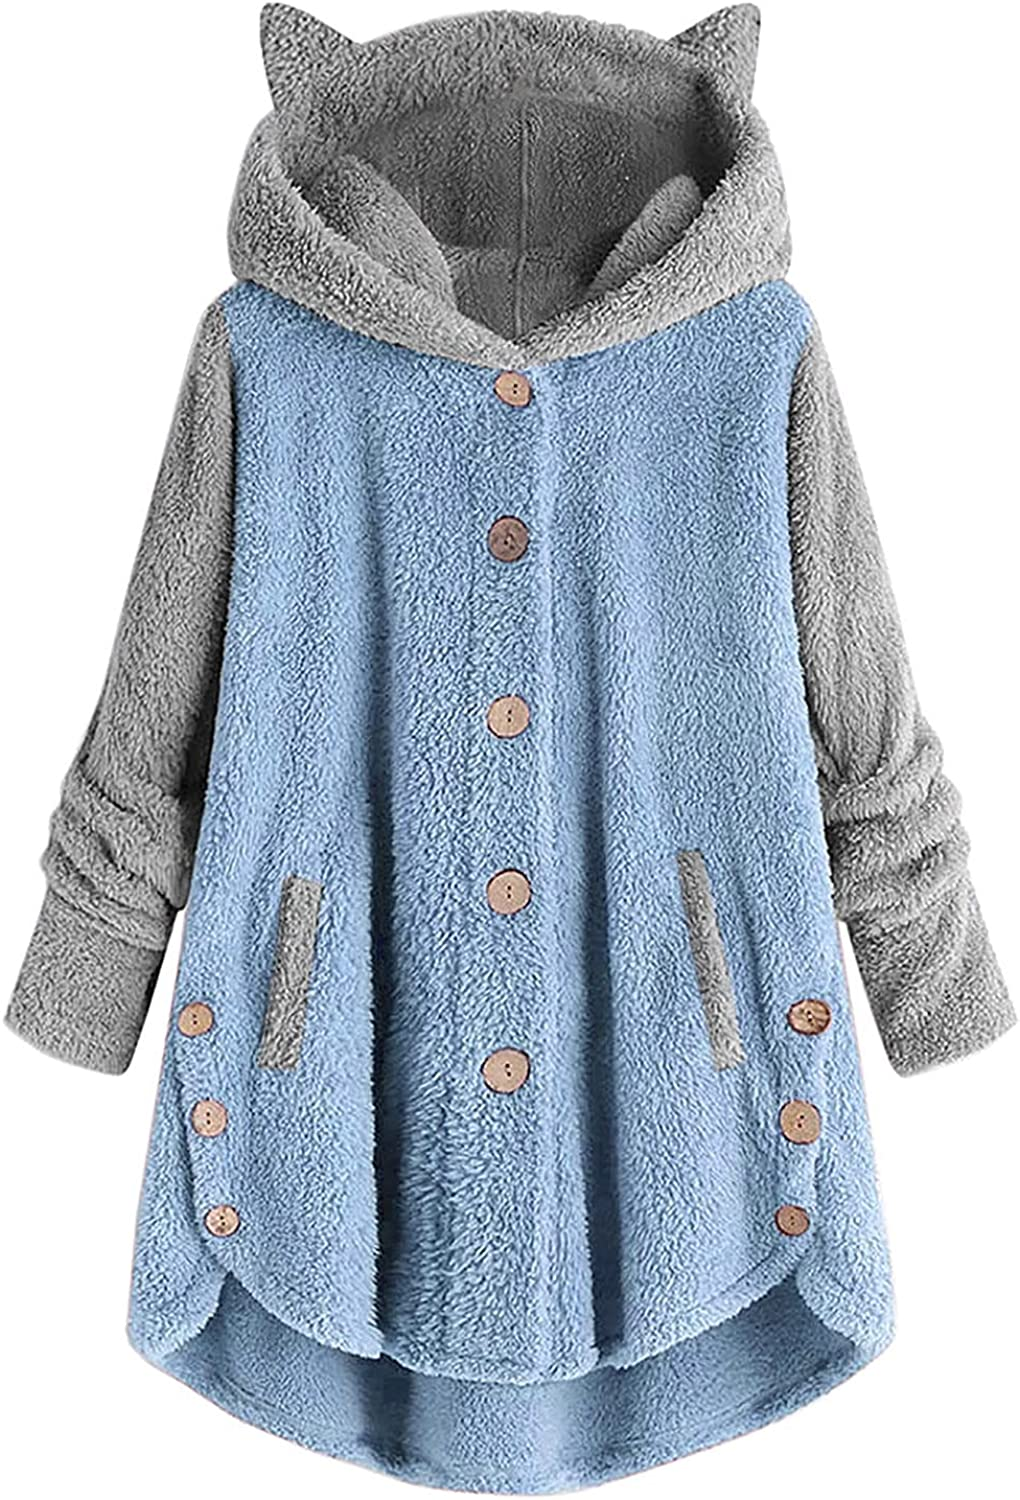 Women's Hoodies Coat Cat Ear Cap Plush Tops Fashion Loose Plus Size Button Long Sleeve Stitching Pullover Sweaters